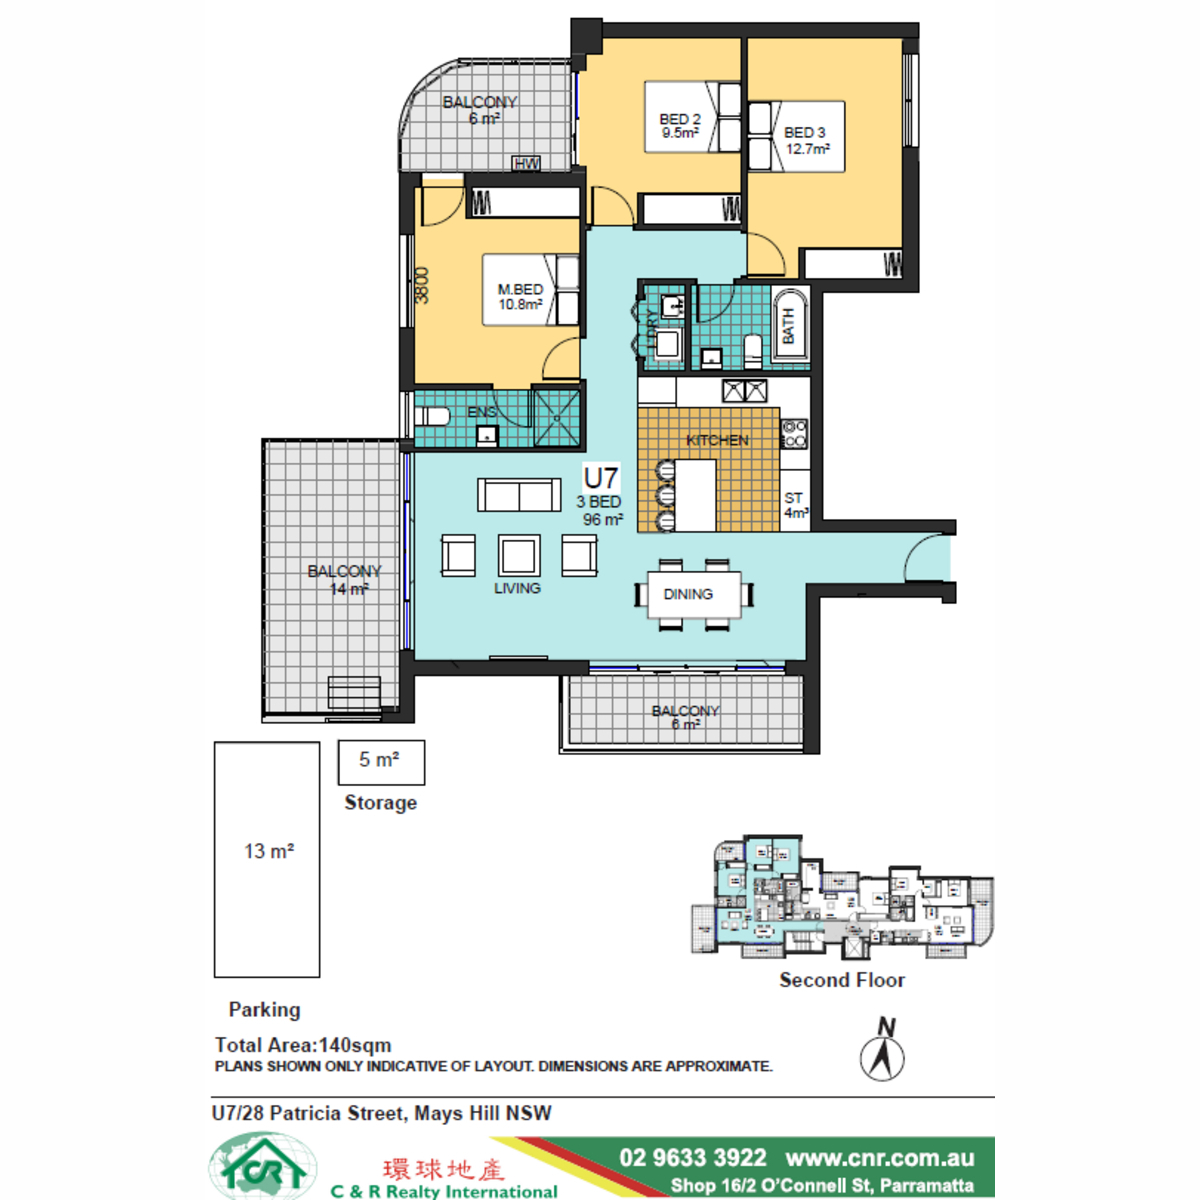 Brand New off the plan 3 bedroom apartment in Parramatta city